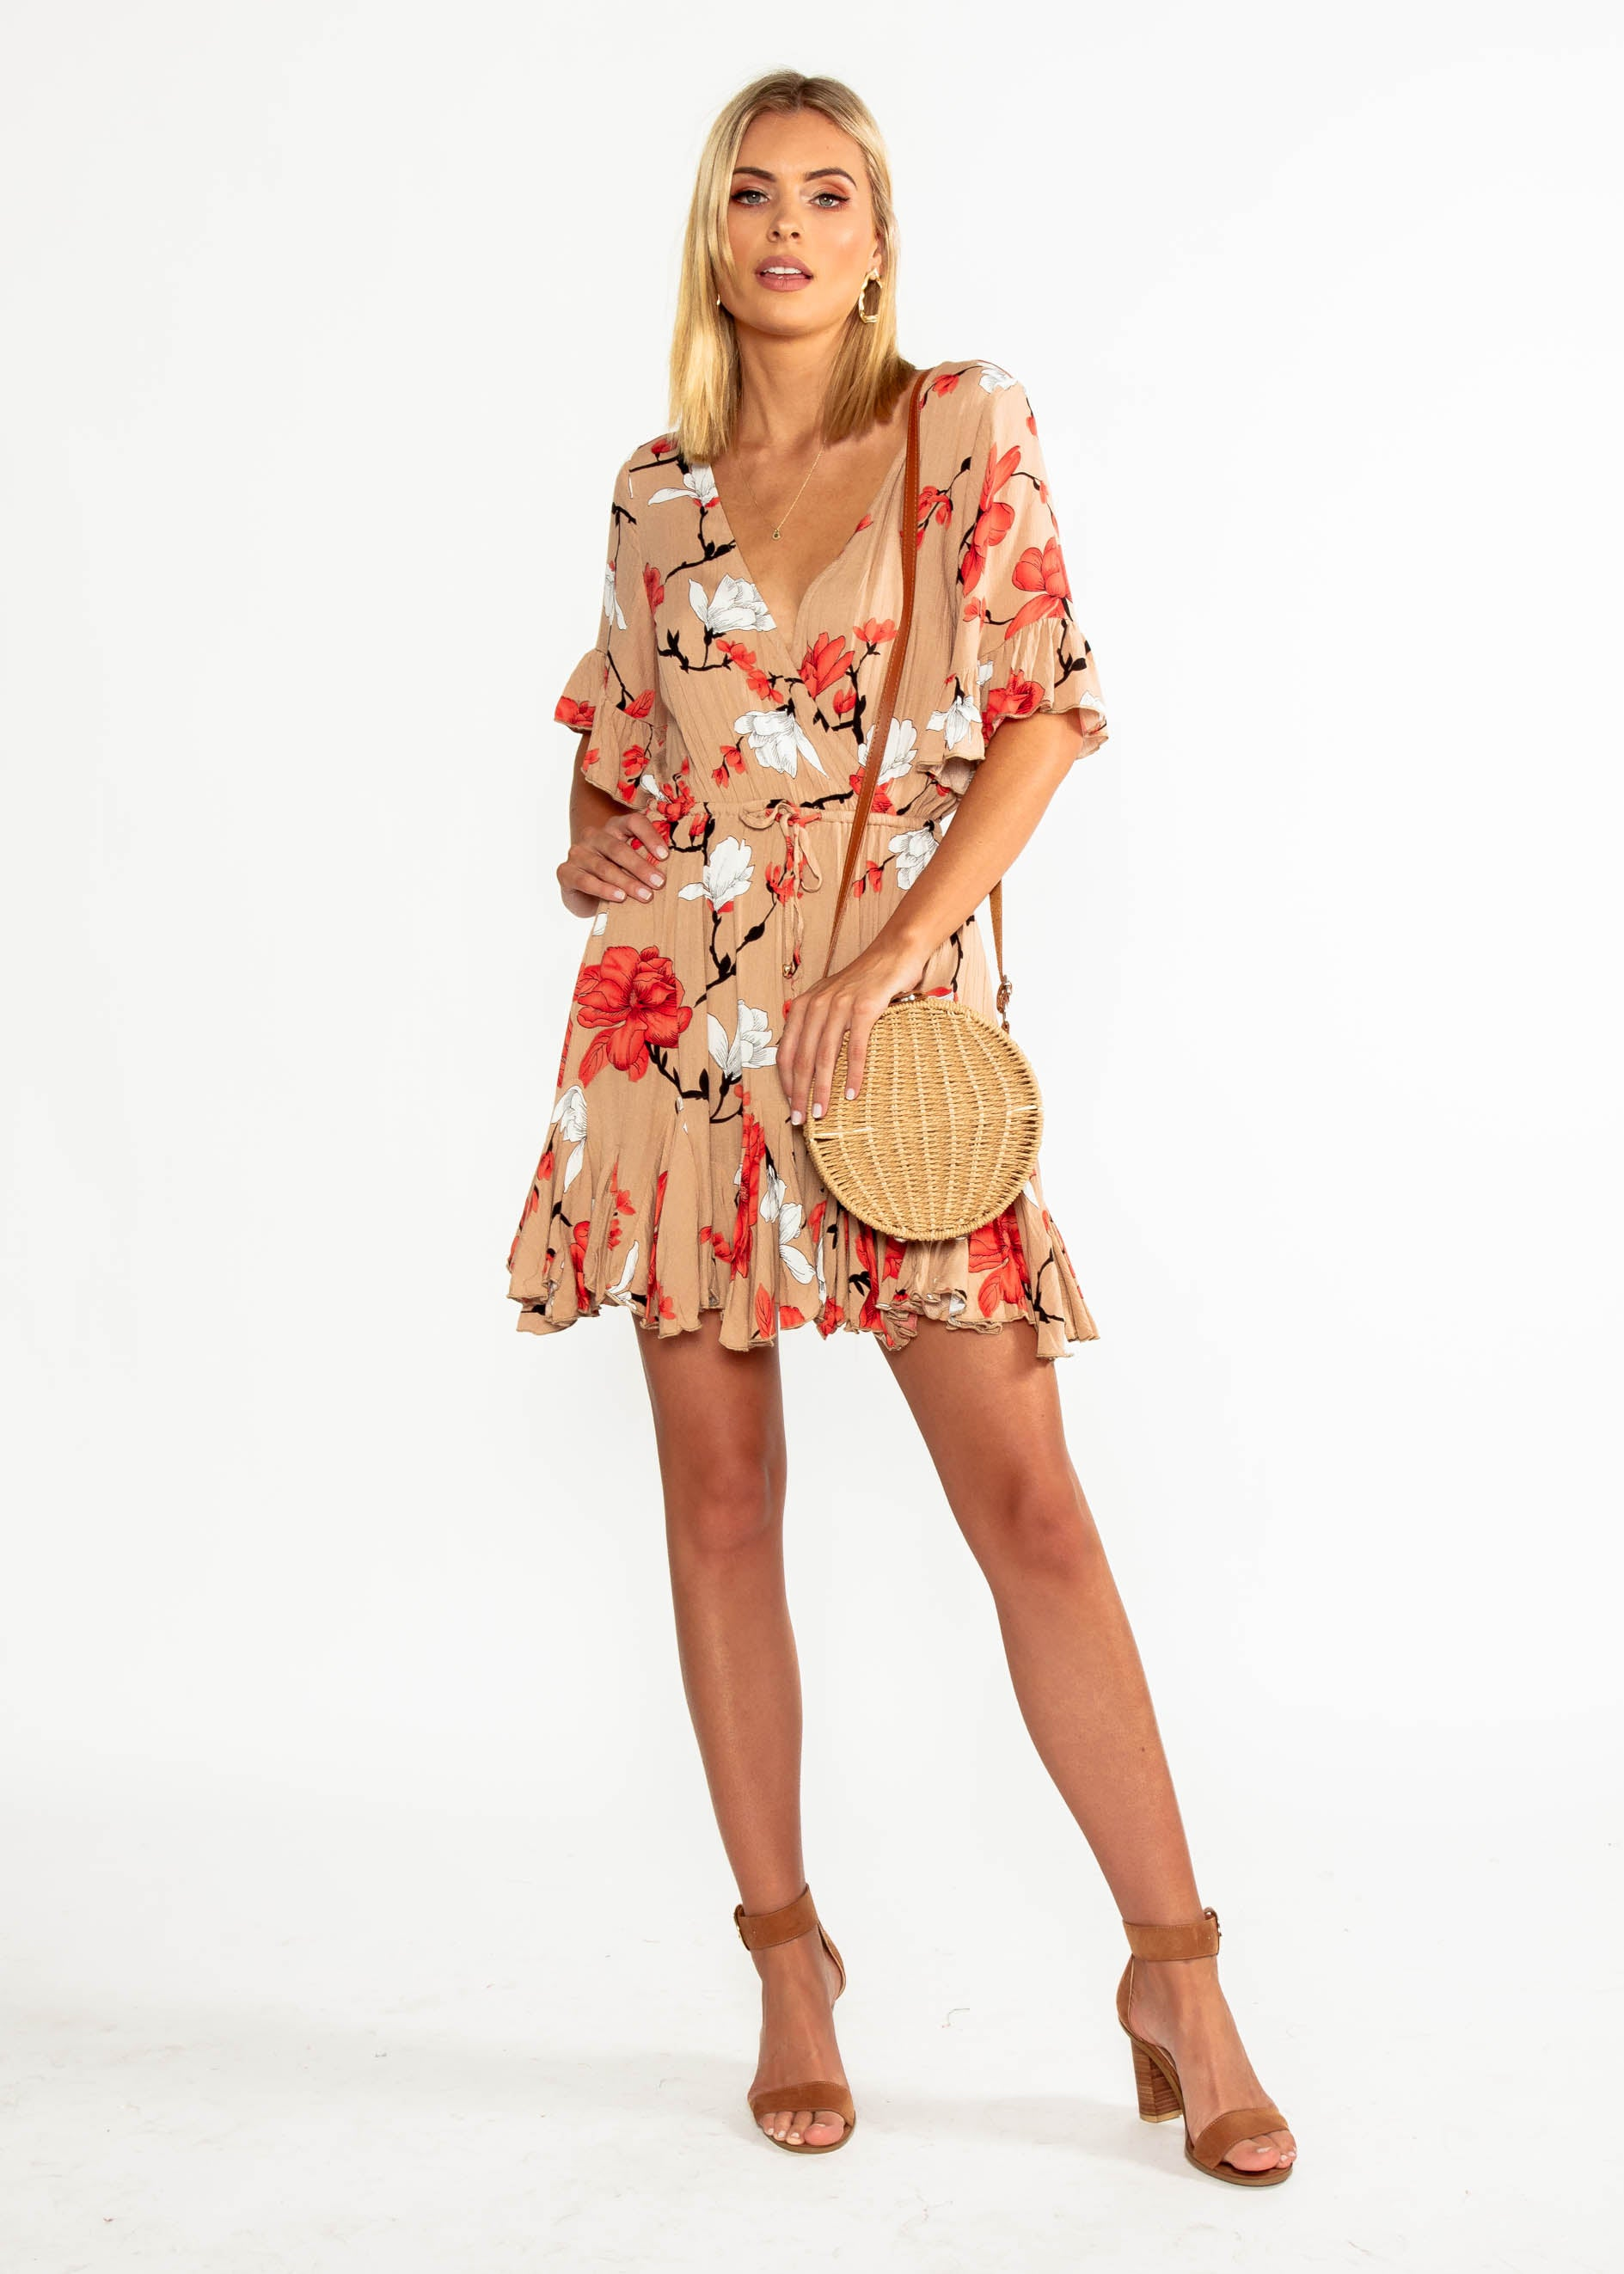 Introducing Me Dress - Mocha Floral